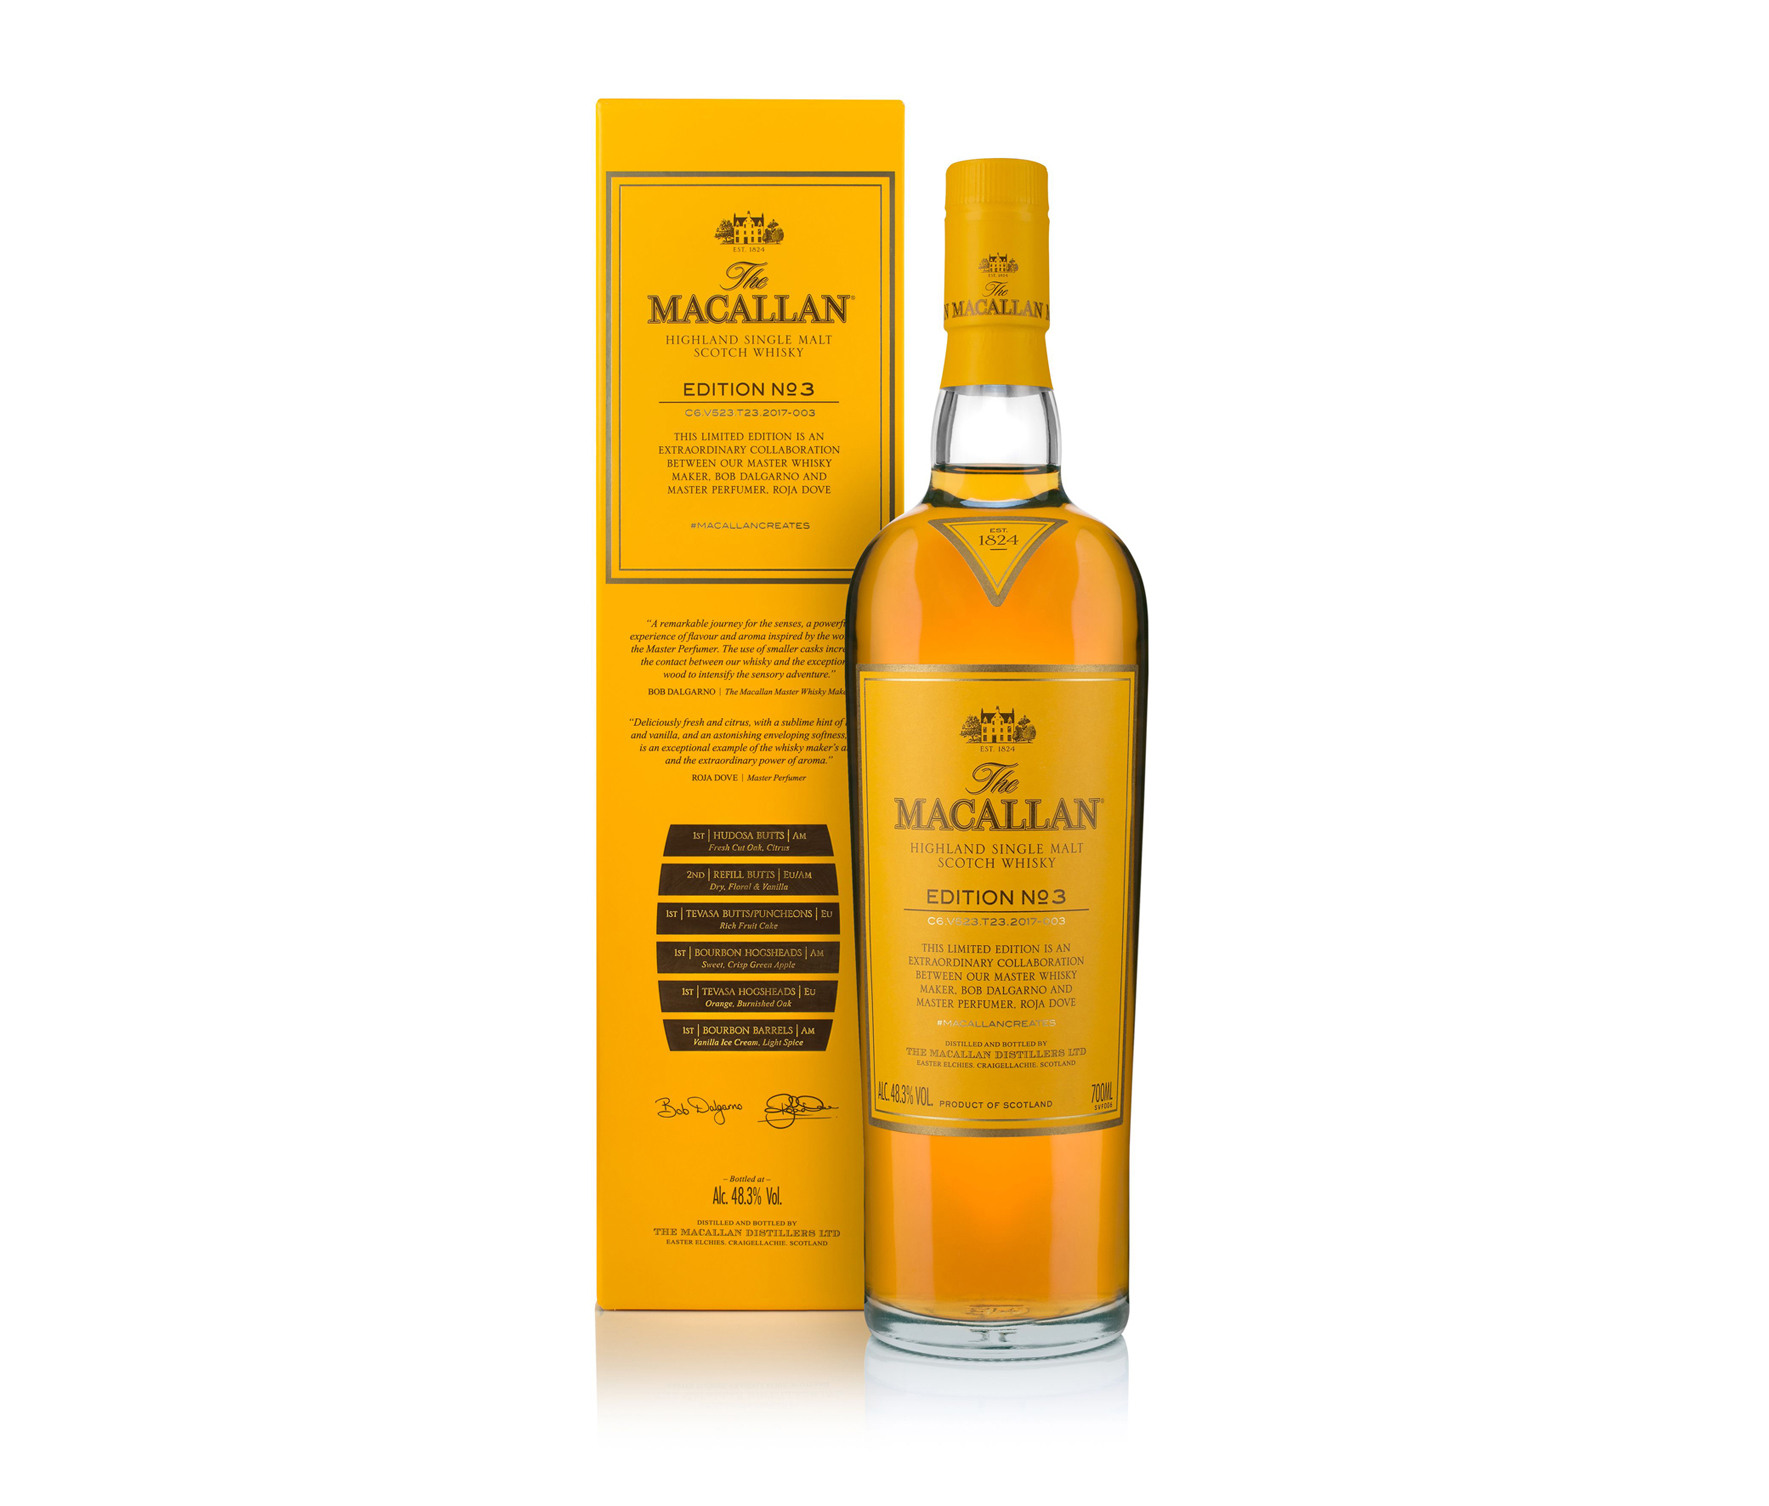 The Macallan Edition No 3